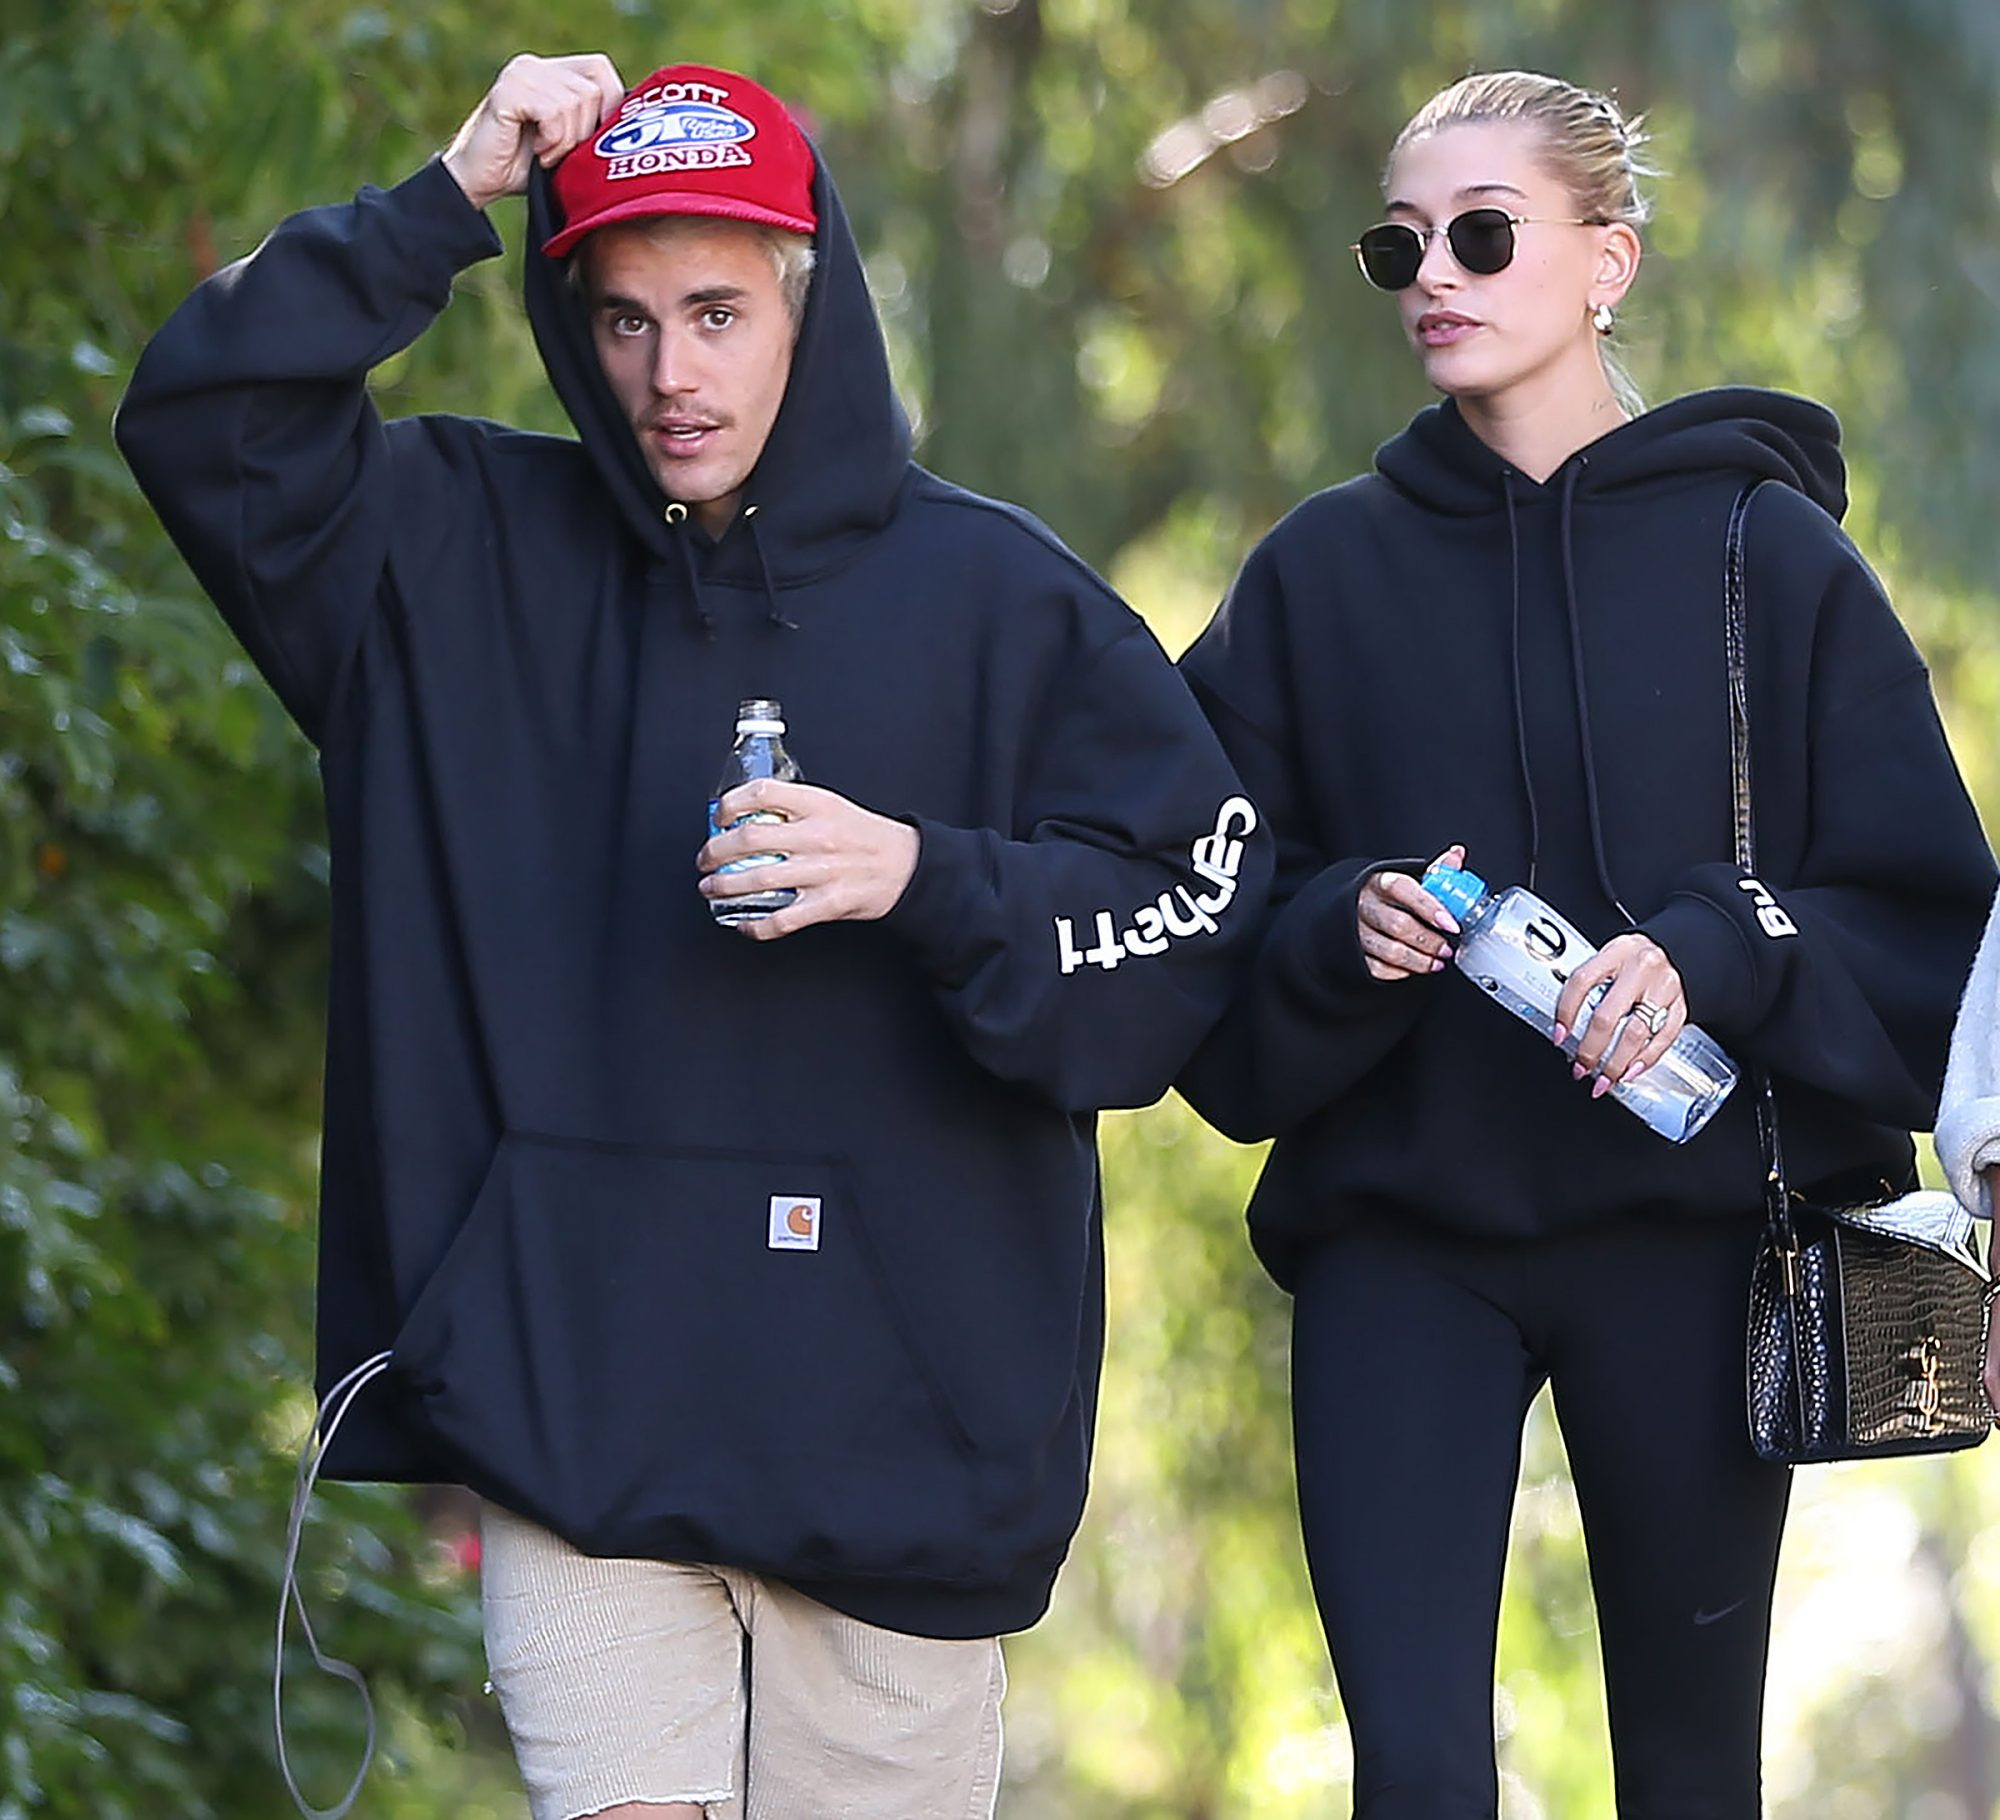 Canadian Singer Justin Bieber And Hailey Rhode Baldwin Among Friends Hiking In Los Angeles